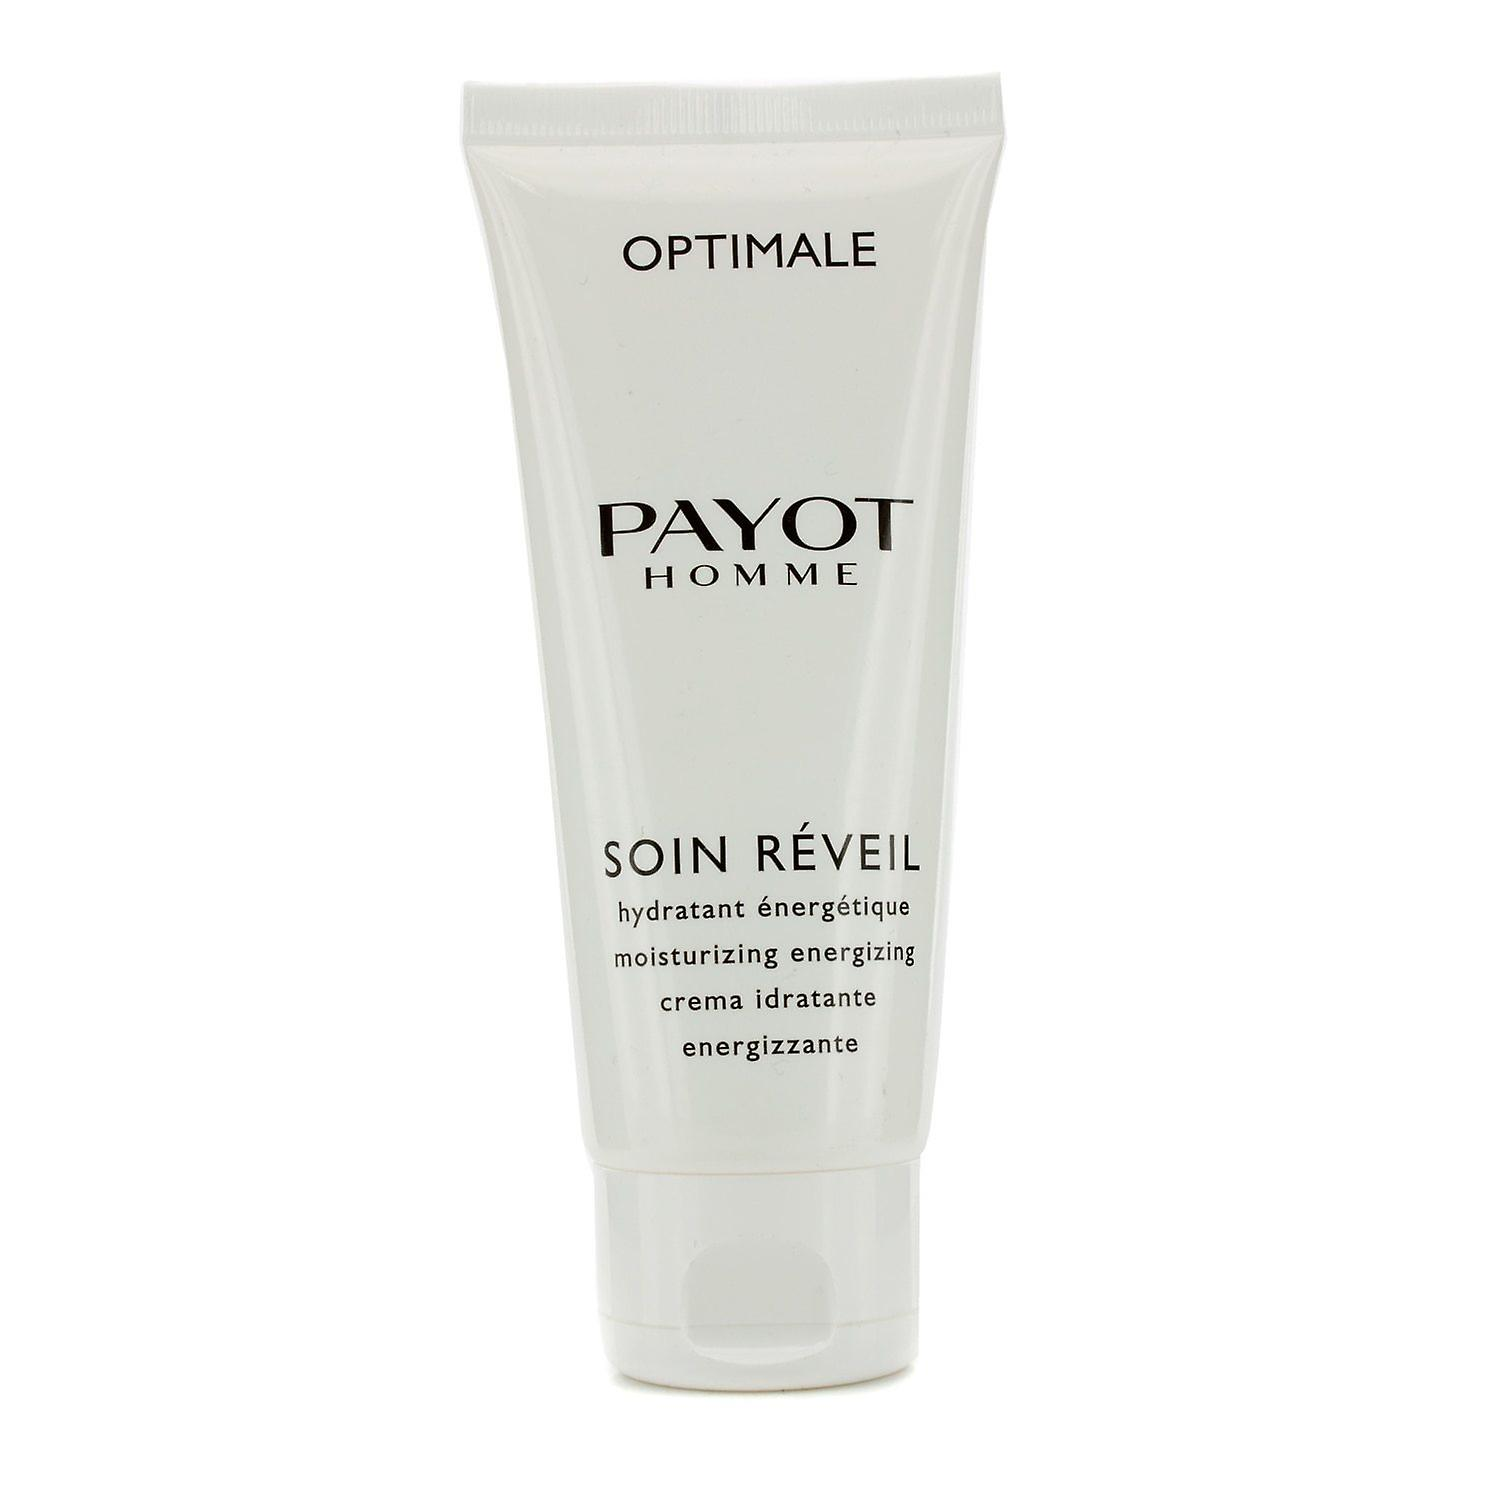 Payot Optimale Homme Soin Reveil Moisturizing Energizing Gel (Salon Size) 100ml/3.3oz